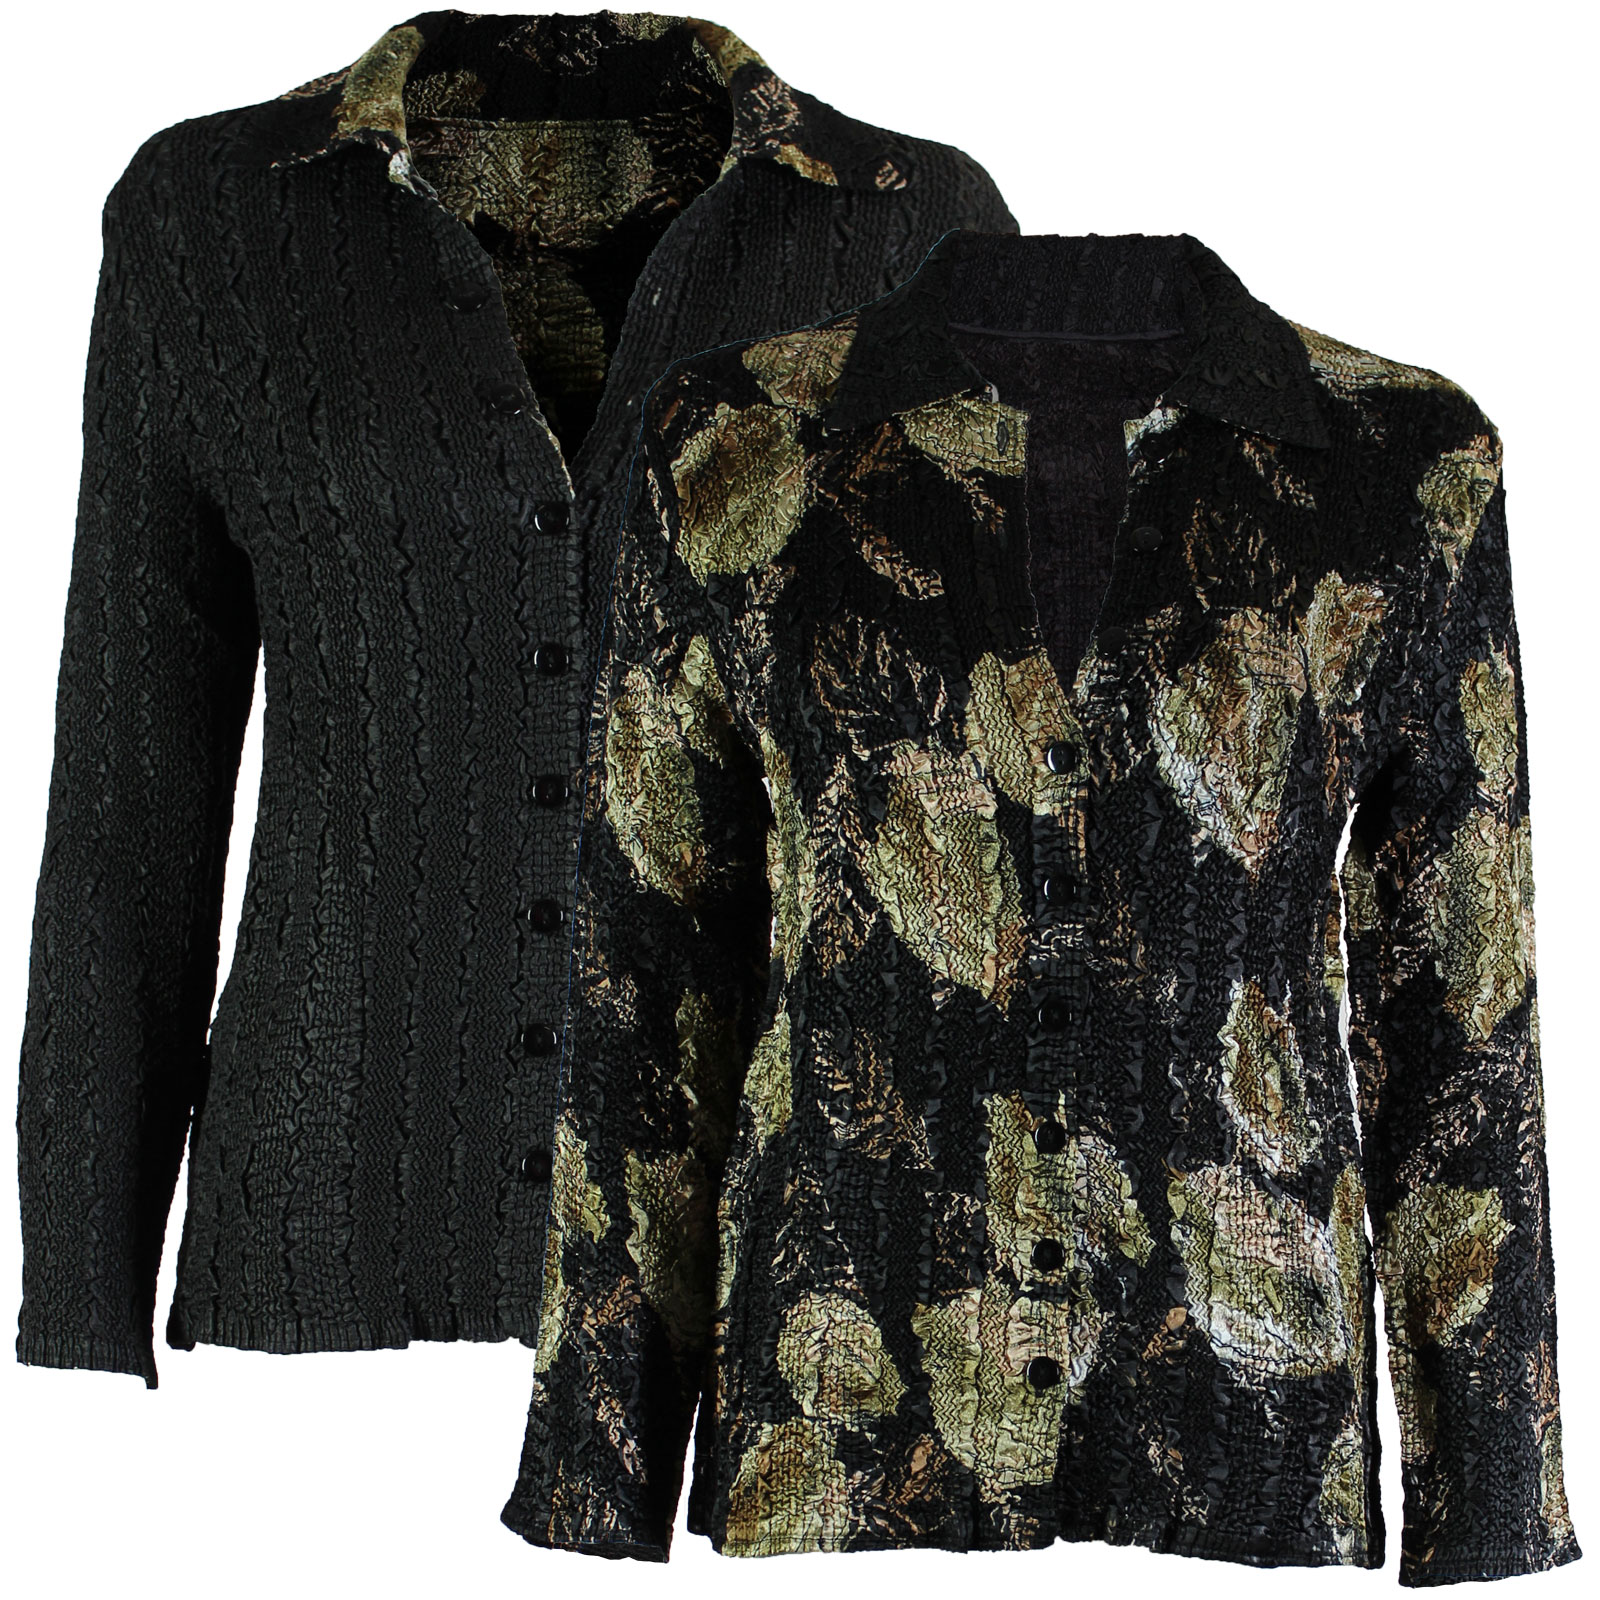 Wholesale Magic Crush - Reversible Jackets Black with Gold Leaves reverses to Solid Black #1048 - L-XL